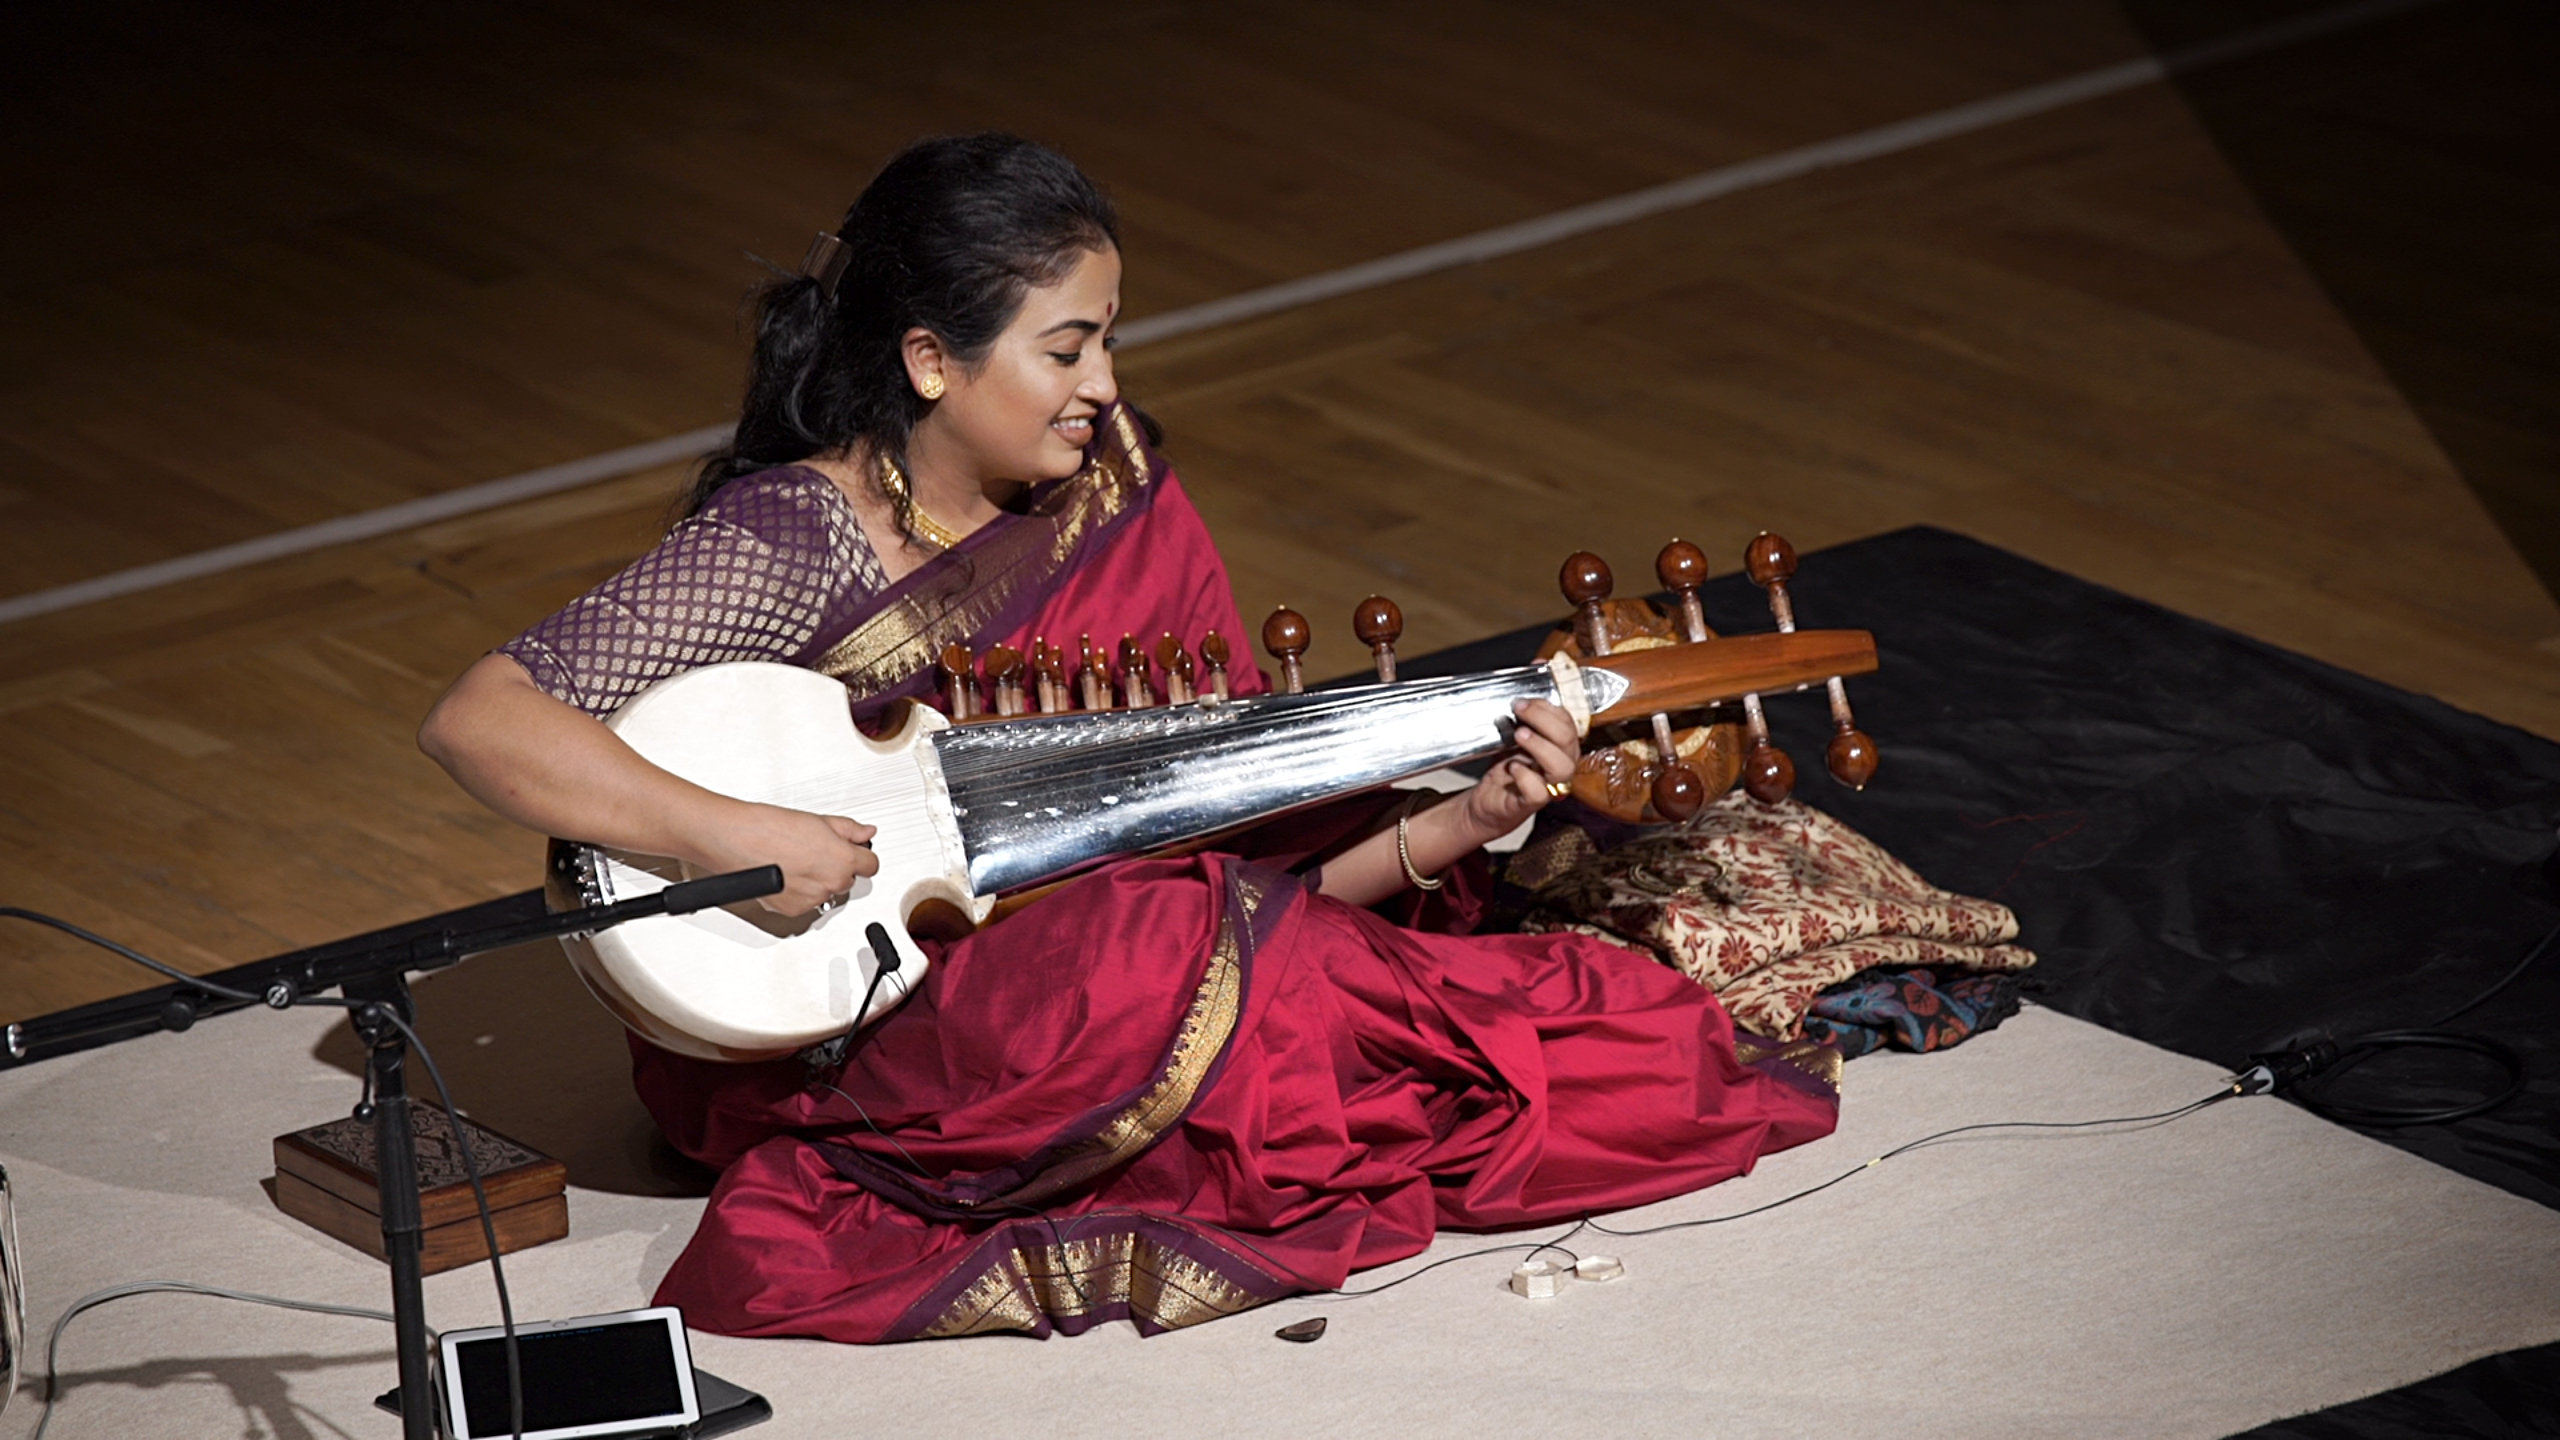 A photo taken from the balcony of Debasmita playing the sarod on stage at St George's.